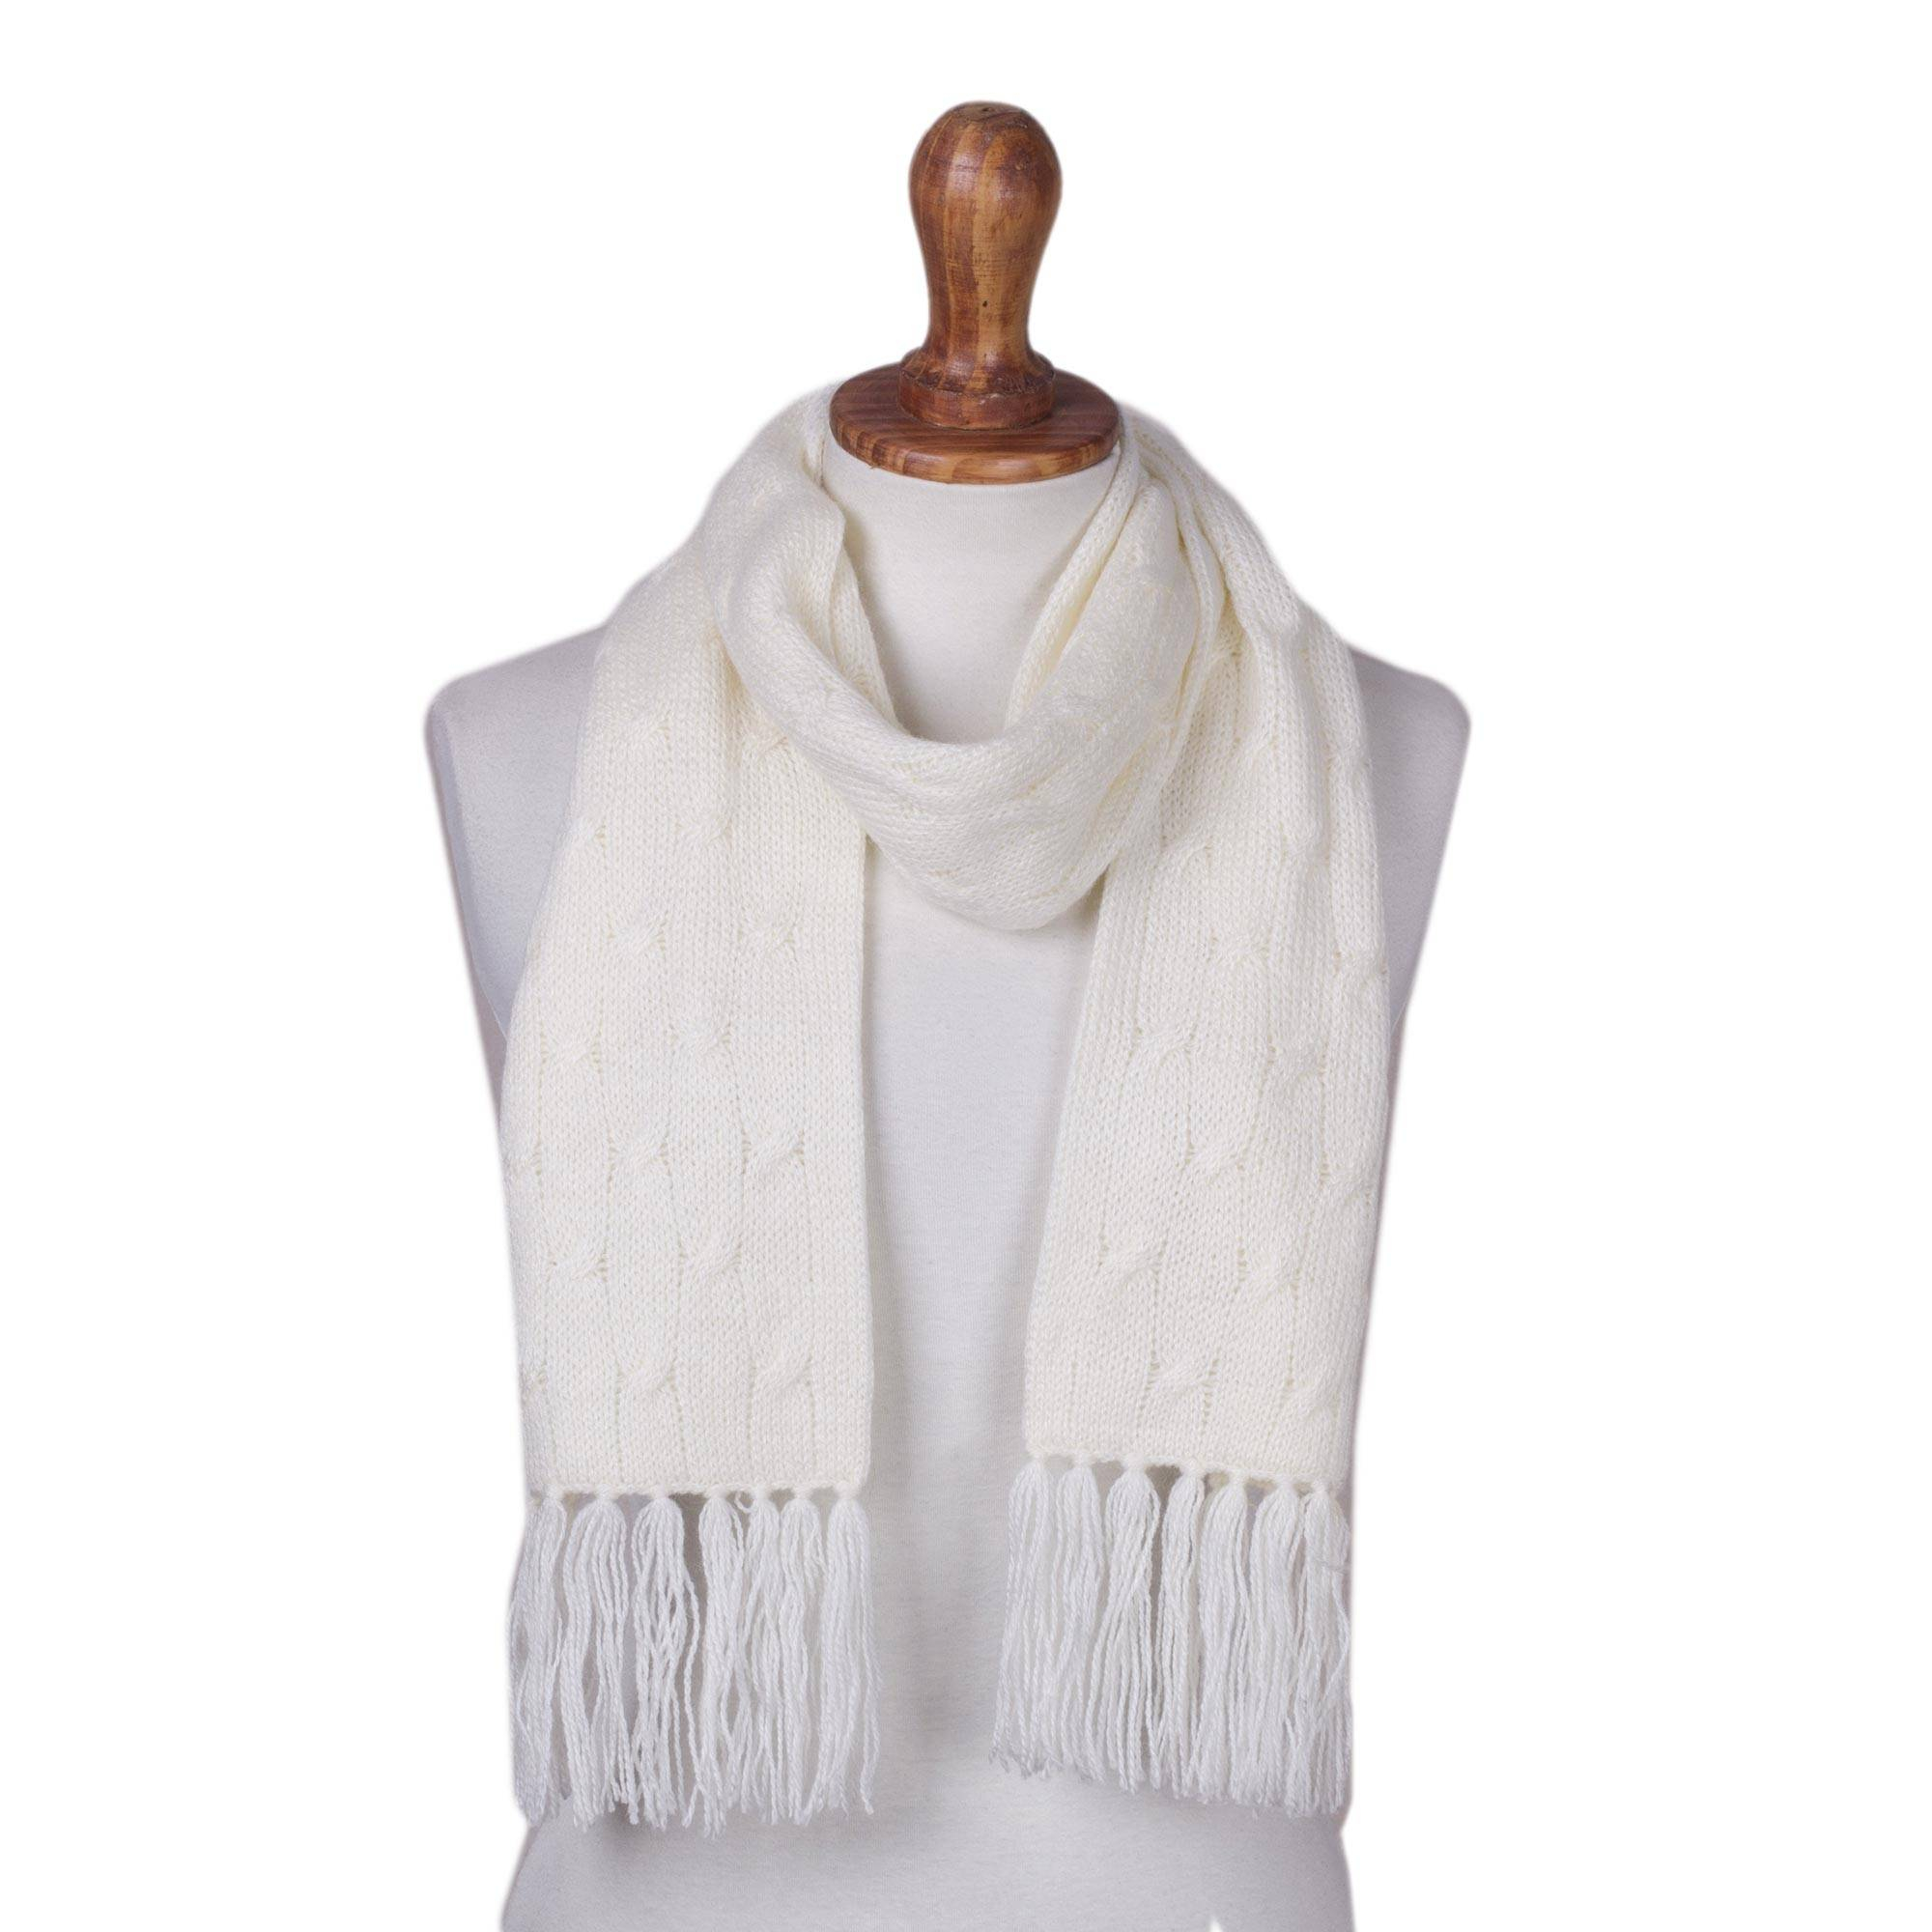 Cable Knitted Scarf Pattern White Unisex Acrylic Cable Knit Scarf From Peru Soft Winter White